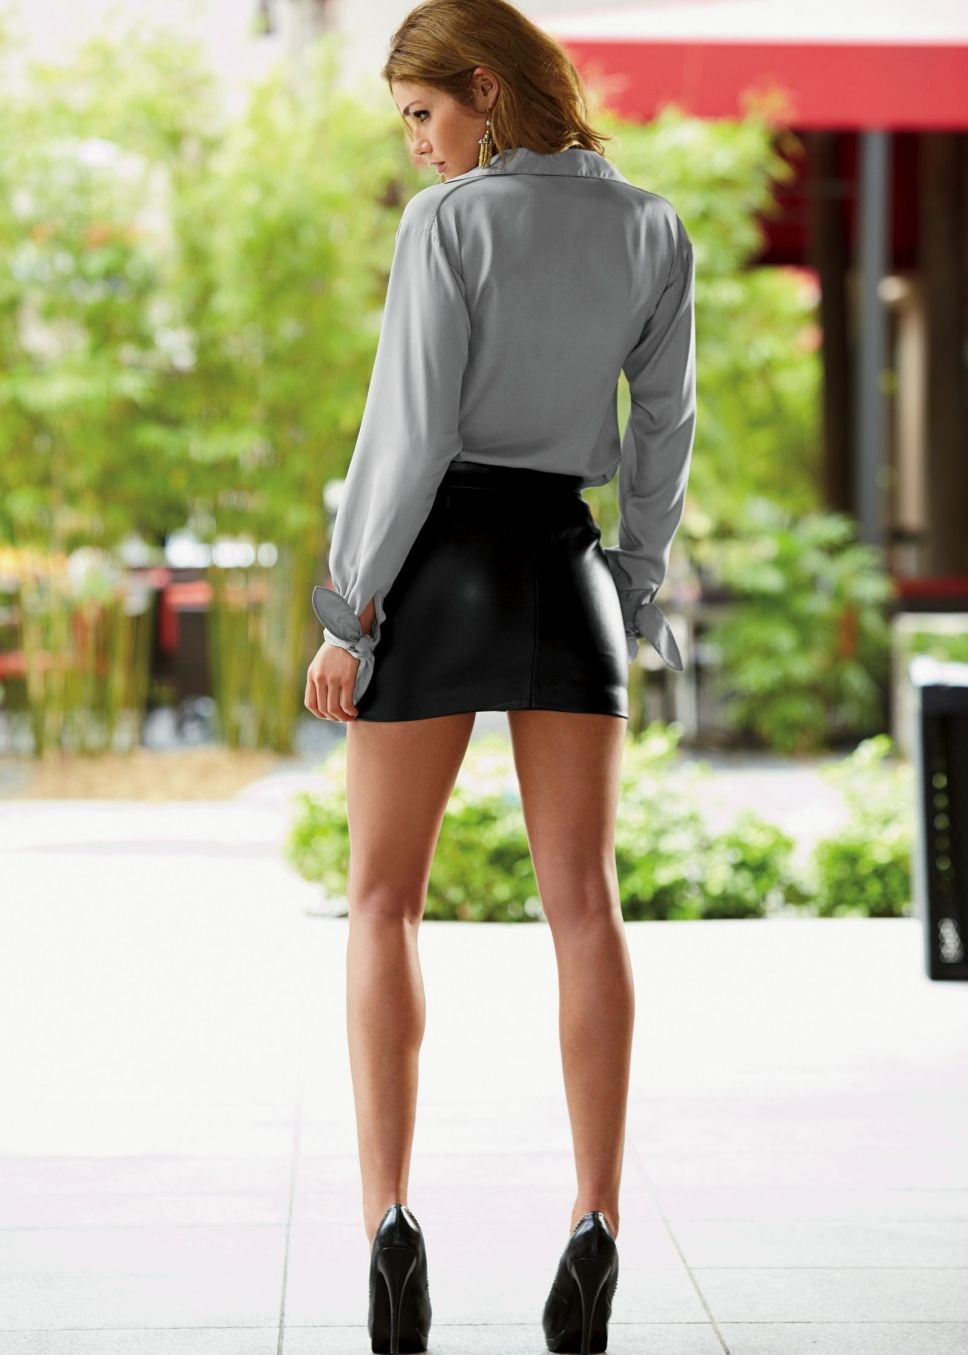 Extremely Short Dresses Richard X 51 Weeks Ago Very Short Mini Dress And Long Legs Mini Skirts Extremely Short Dress Fashion Clothes Women [ 1104 x 736 Pixel ]